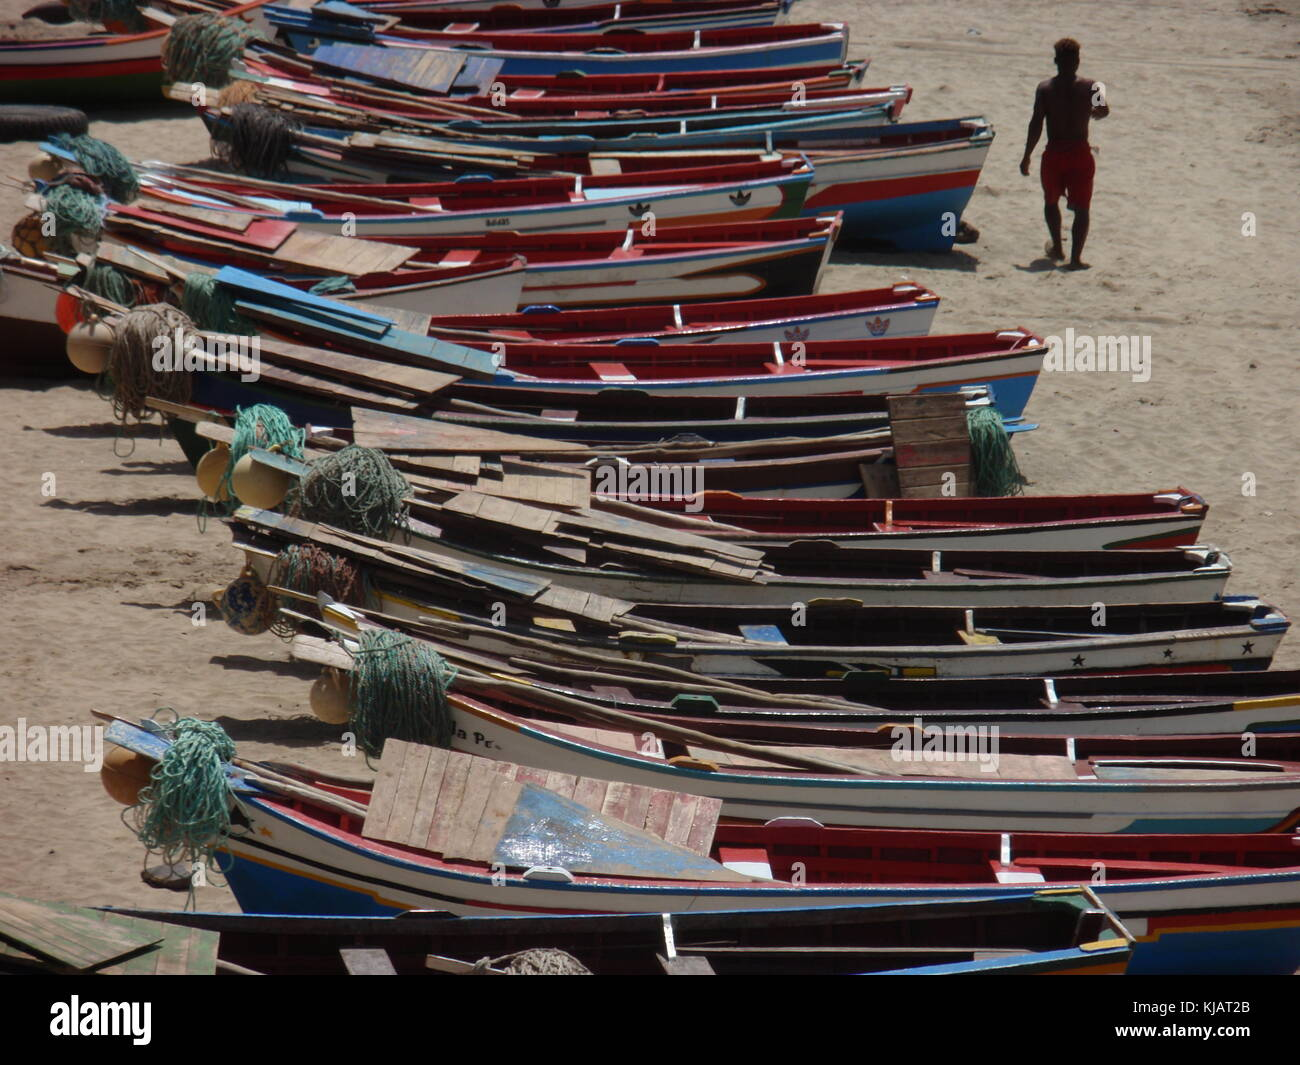 A man walking on tarrafal beach in cape verde, among colored small wooden boats aligned on the sand Stock Photo